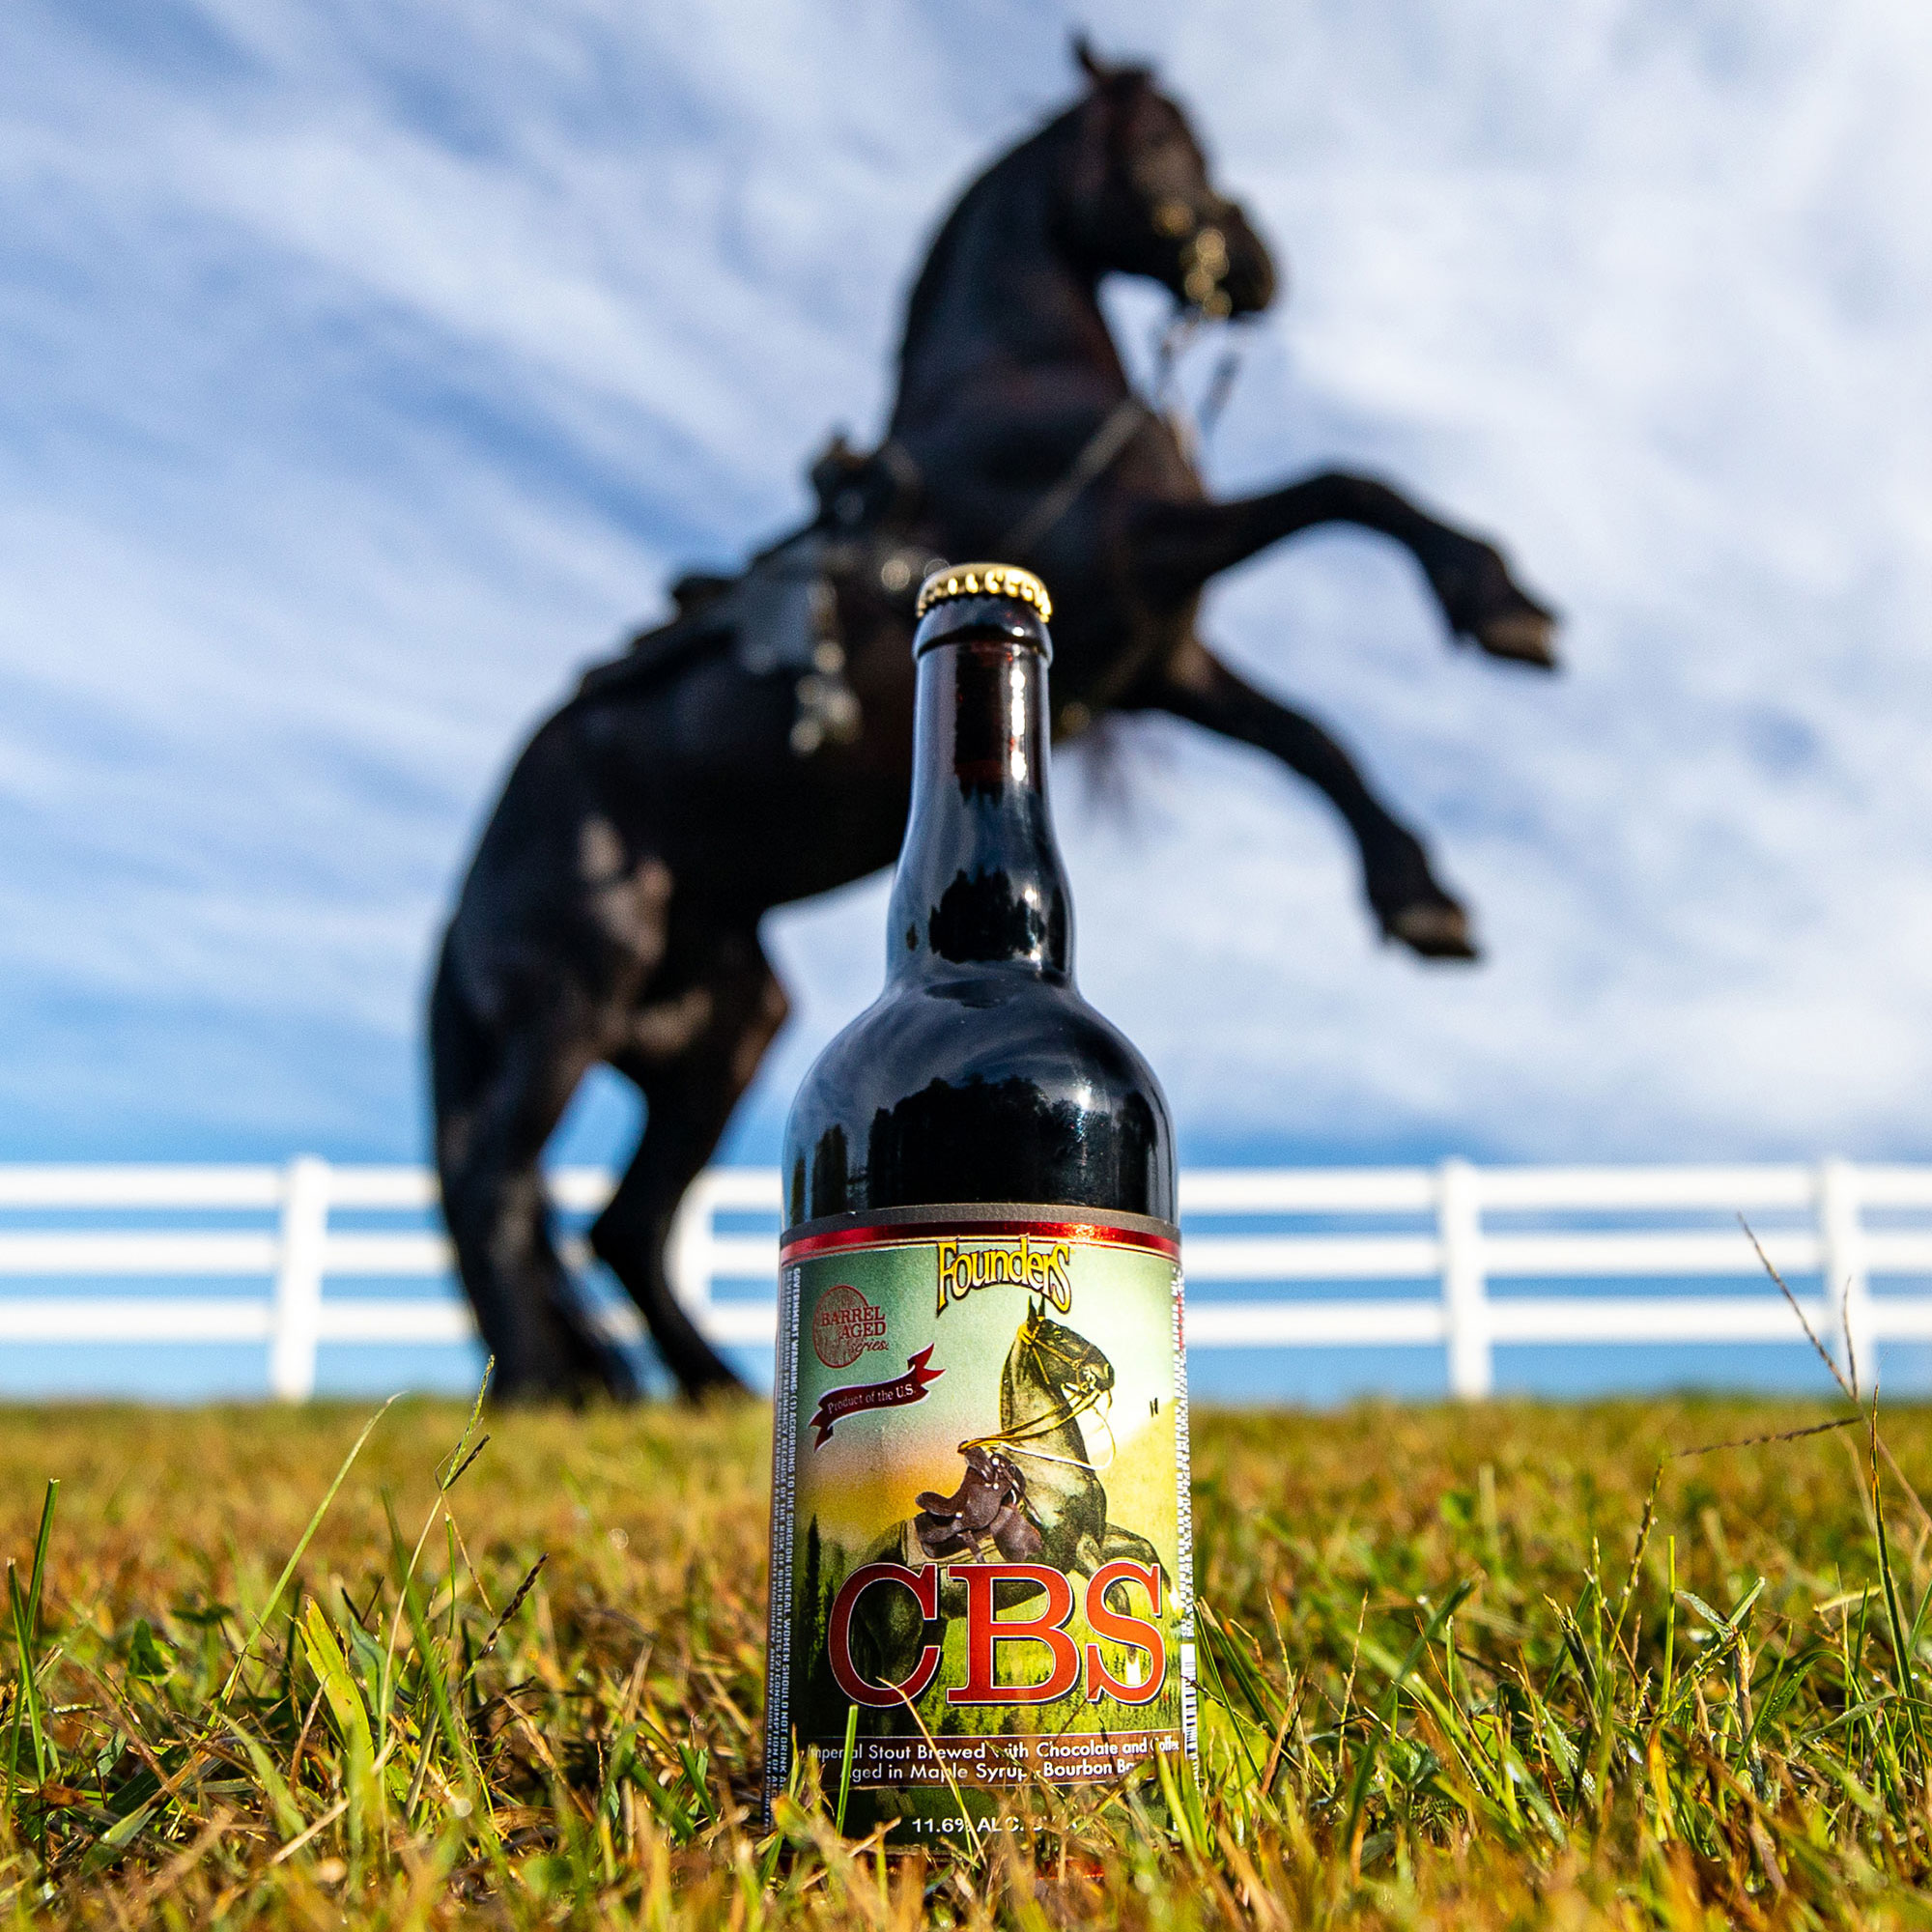 Bottle of Founders CBS with horse